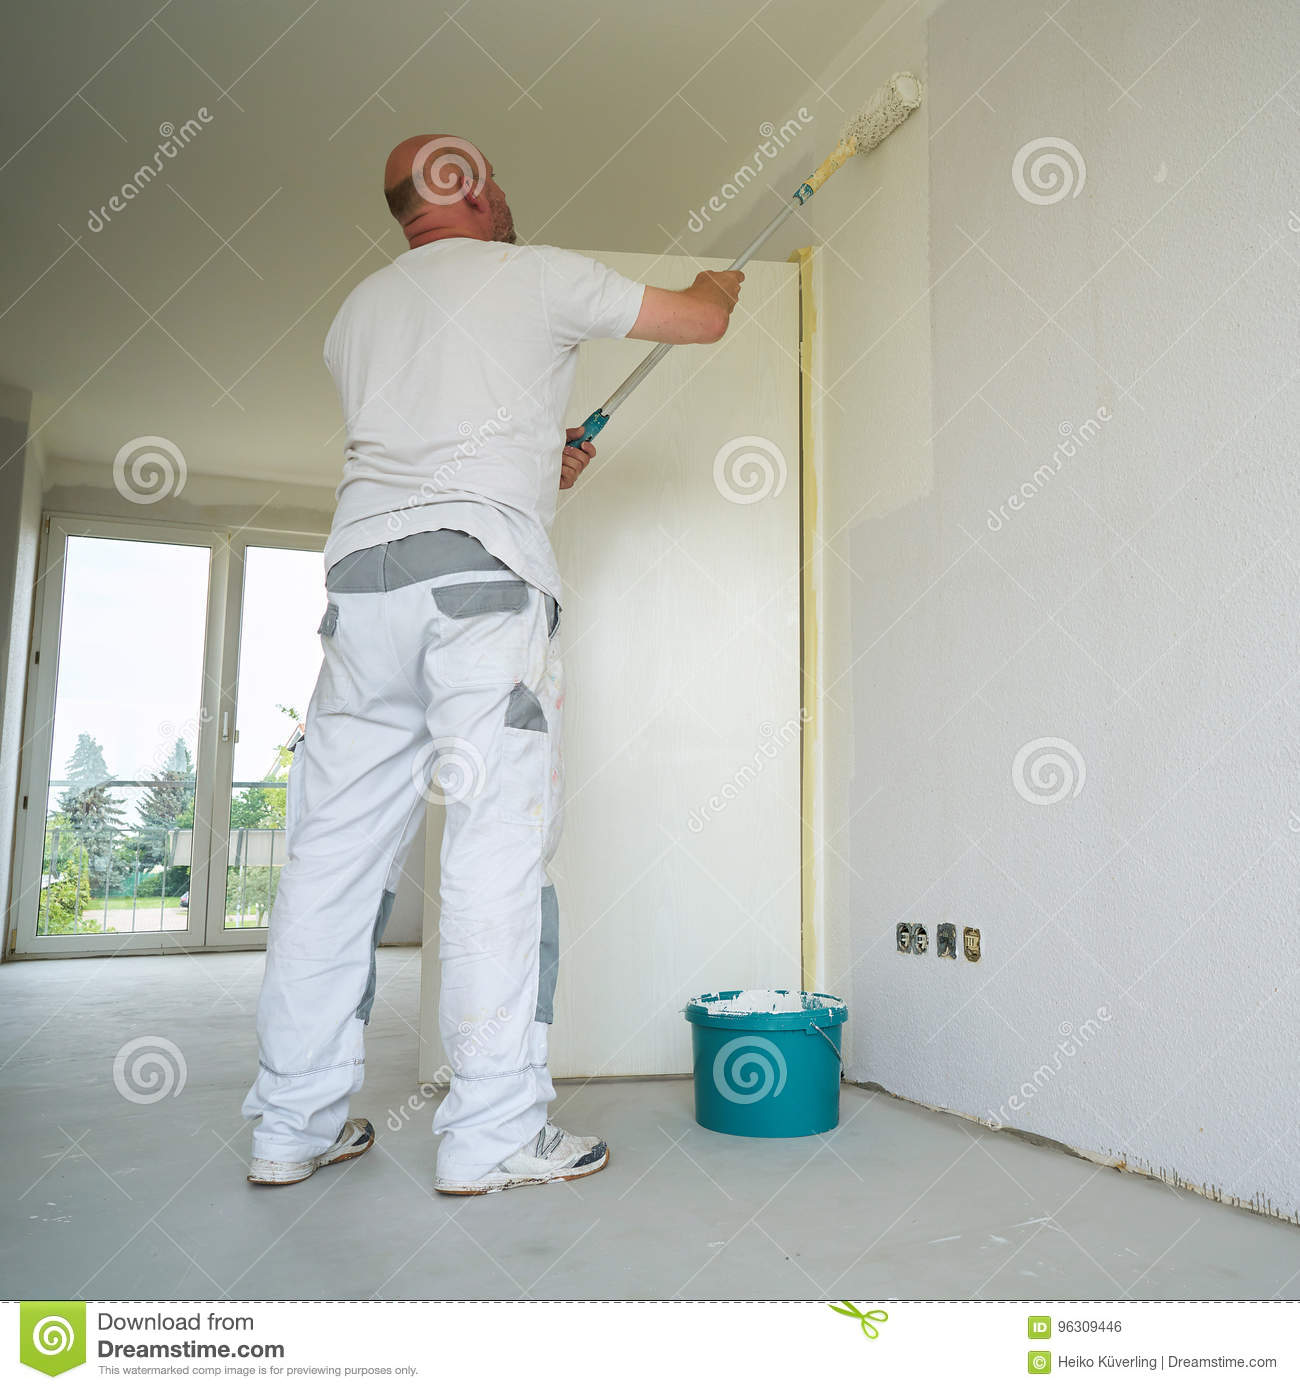 Painter during the renovation